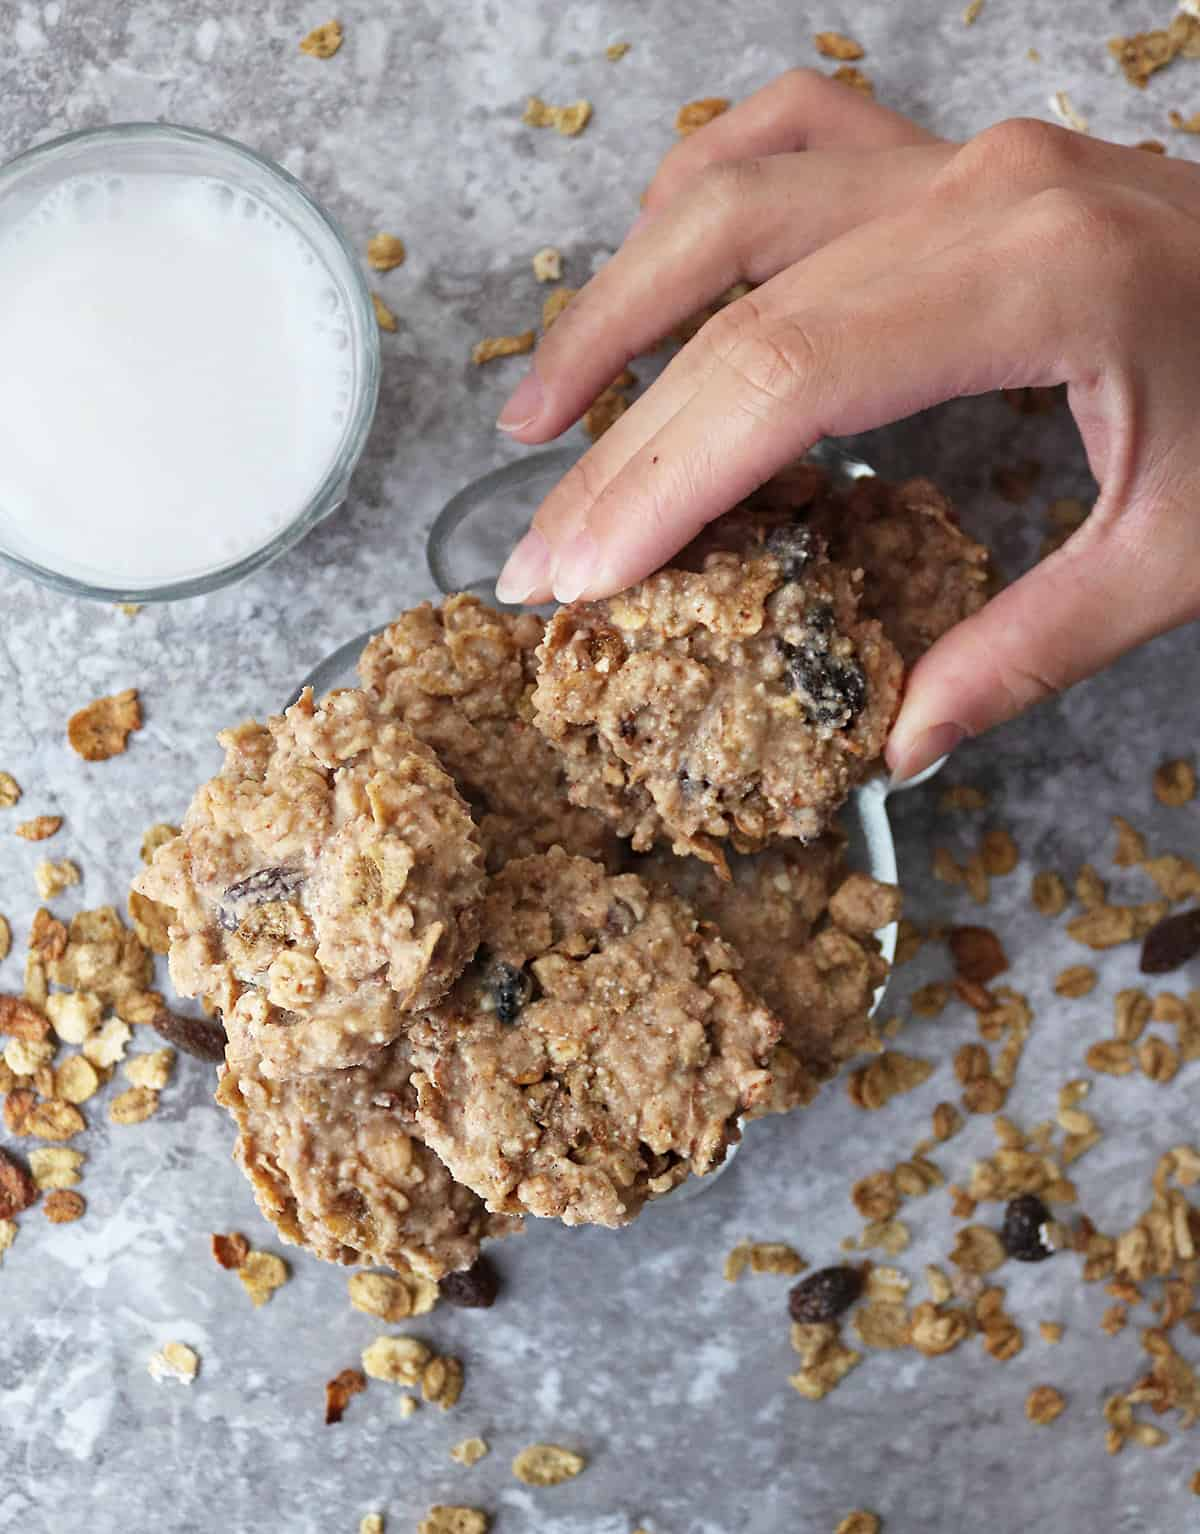 Plate of no-bake cereal cookies for snacking at home